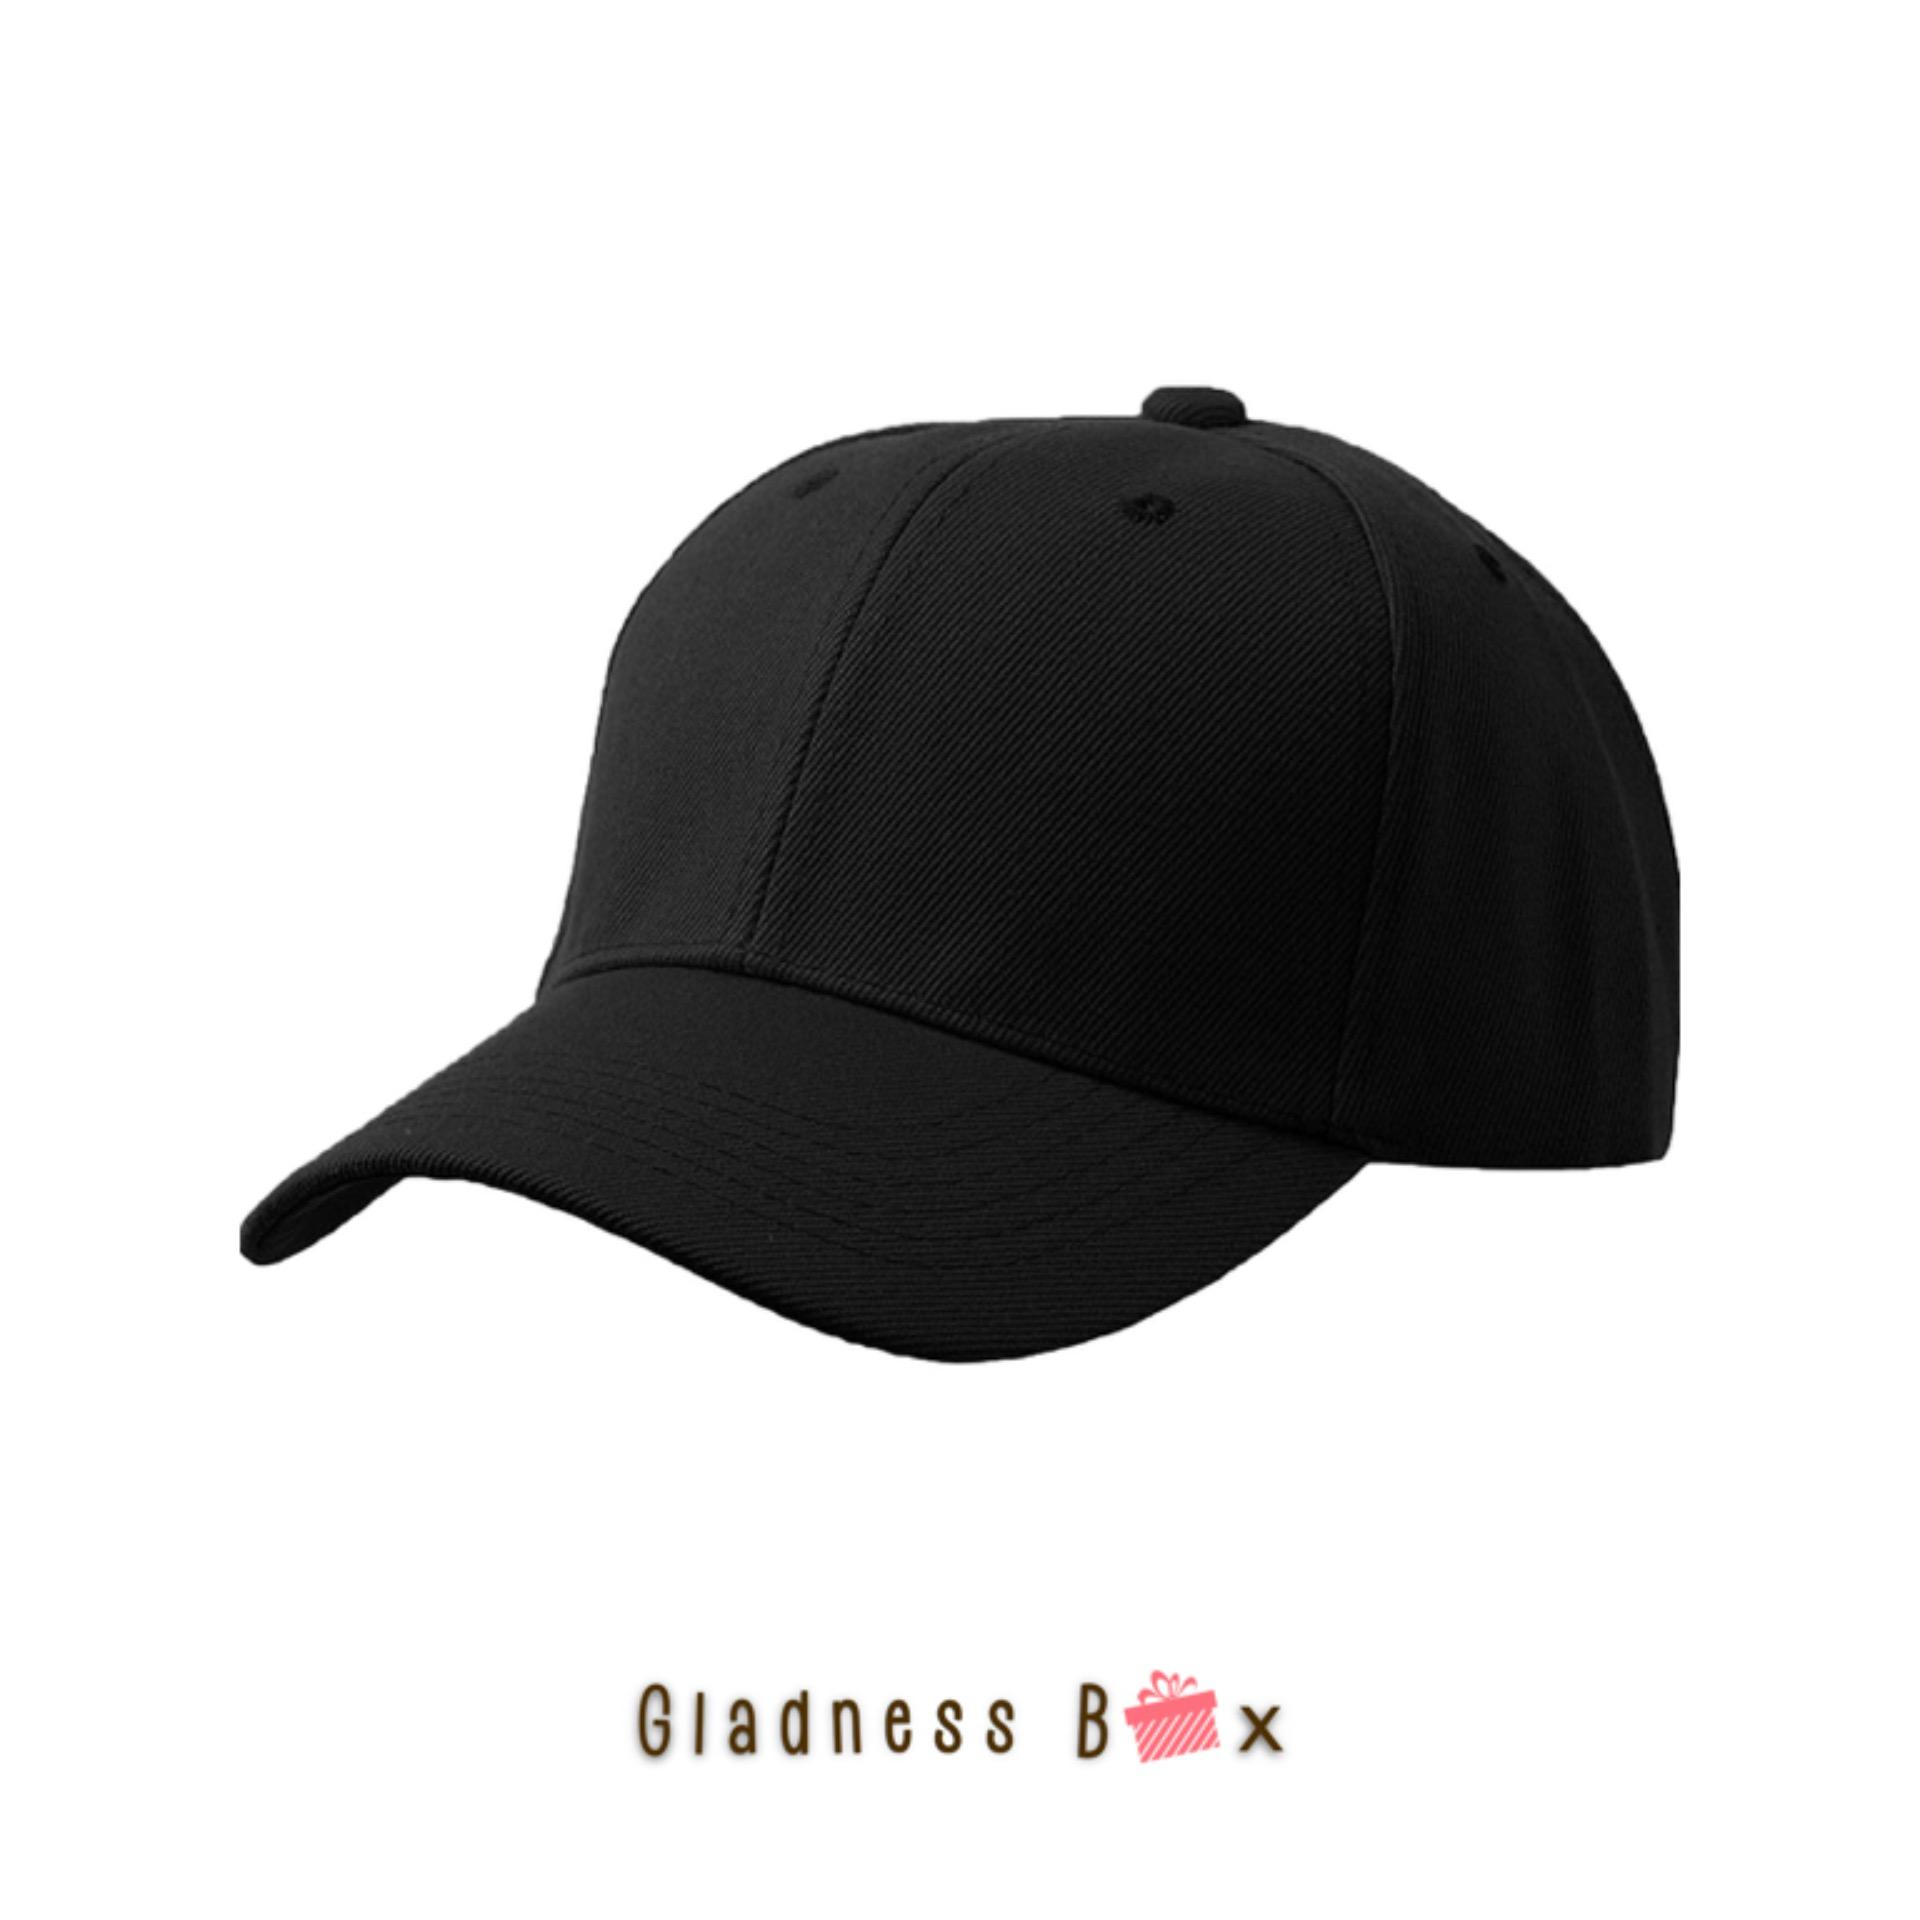 72953698c0a Gladness Box High Quality Plain Baseball Cap for Men/Women/Unisex